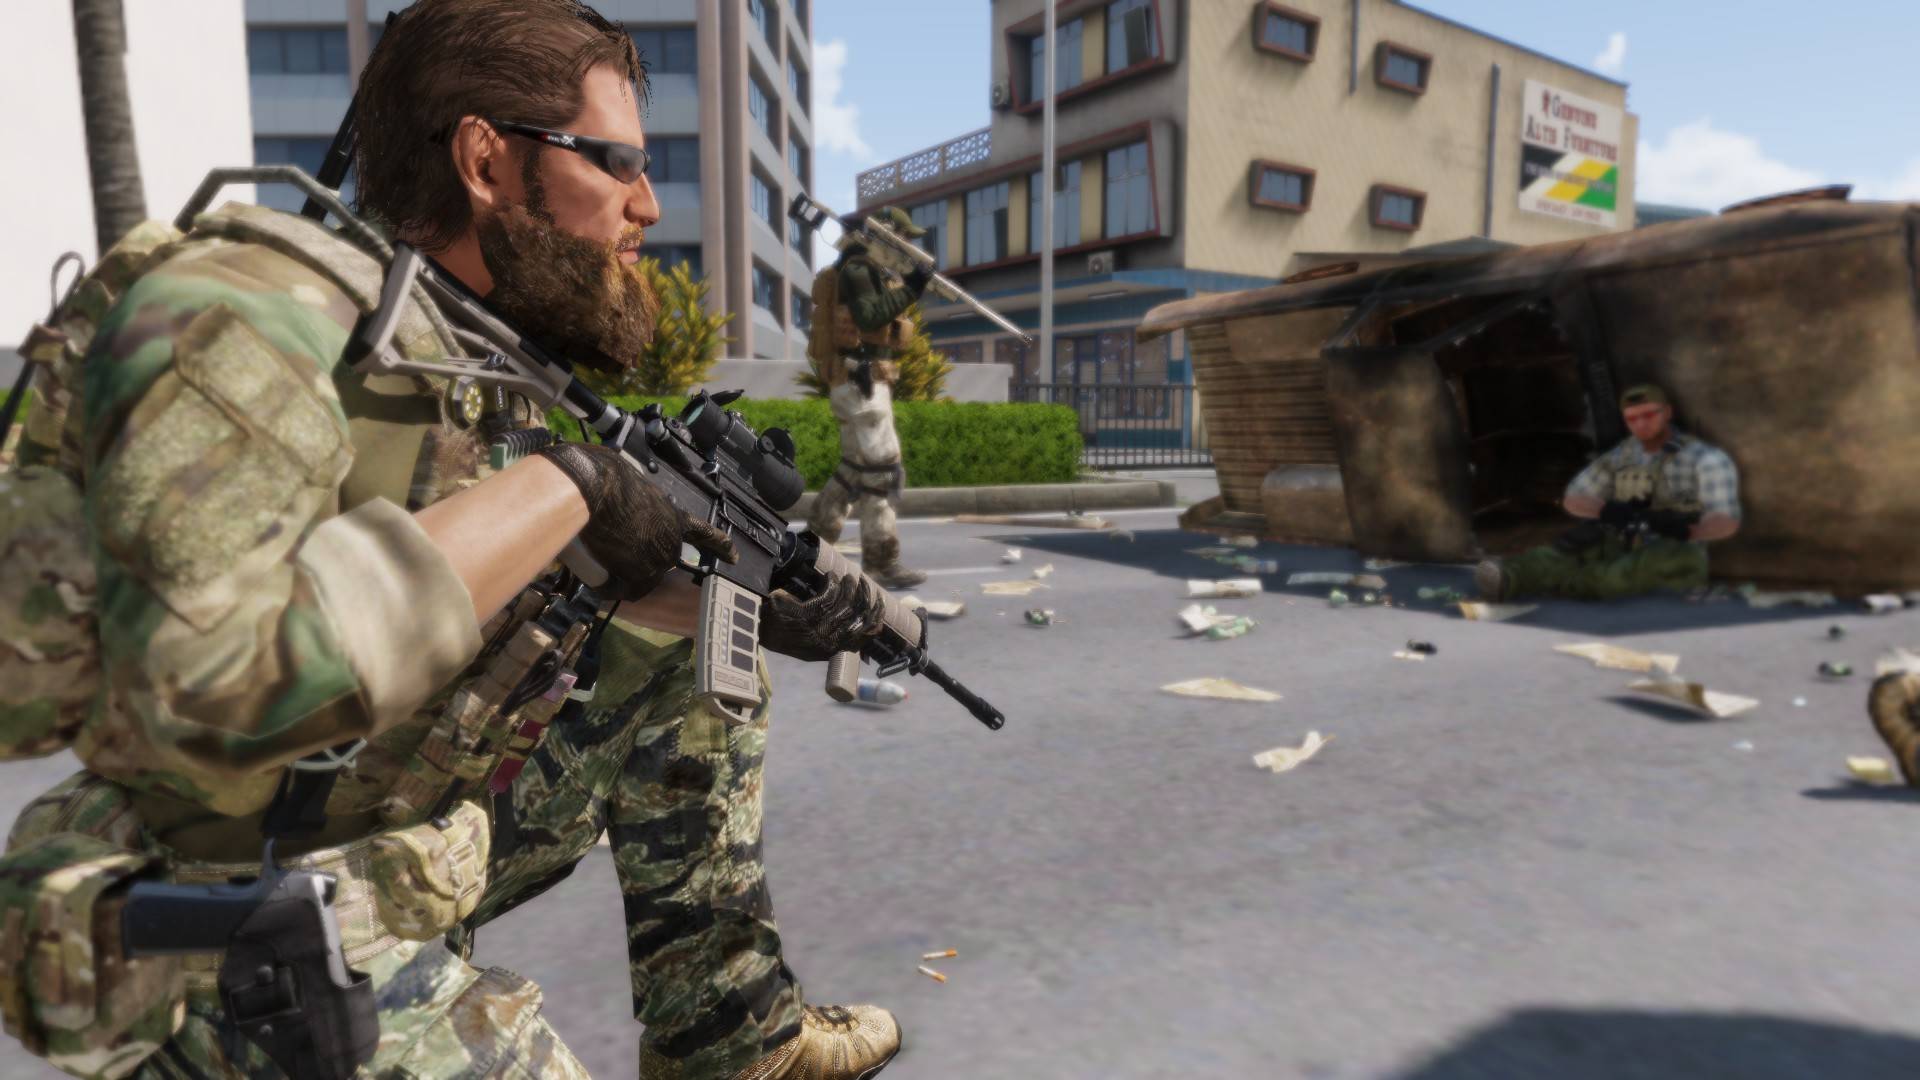 Arma 3 Photography - Pictures only NO comments! And List